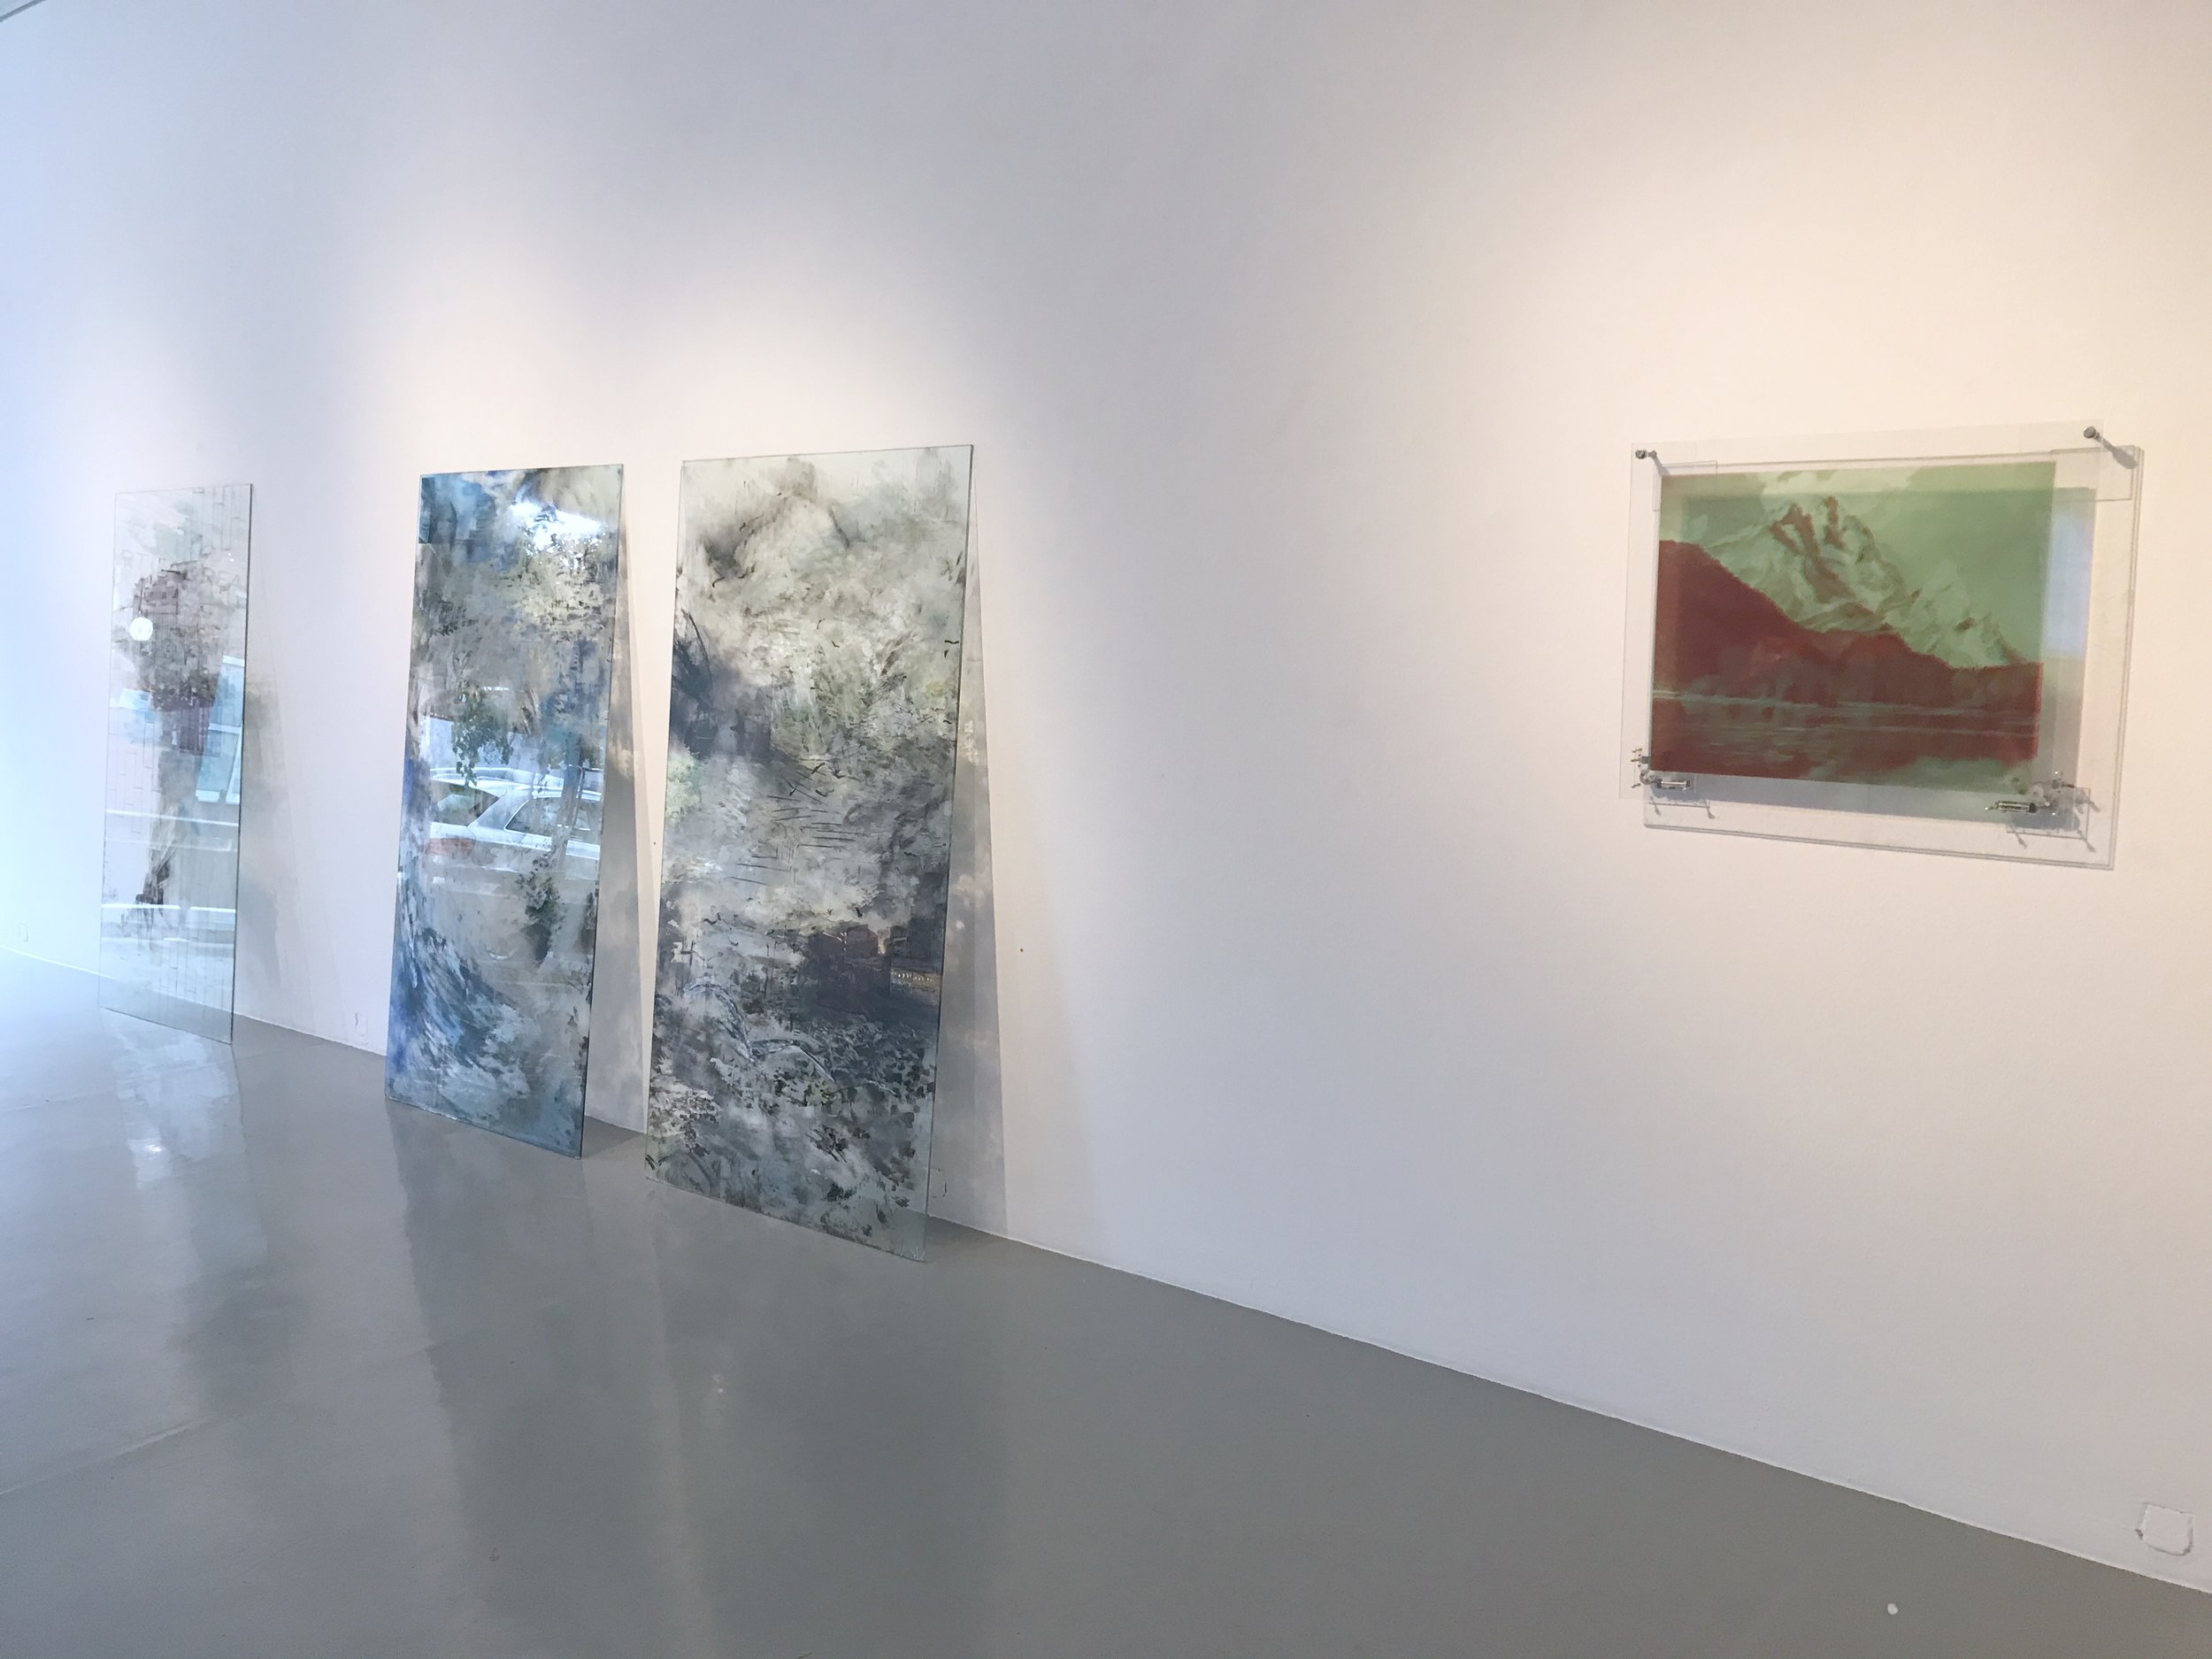 Exhibition view RESET III AND VIRTUAL REALITY, artworks by Carla Mercedes Hihn and Judith Sönnicken